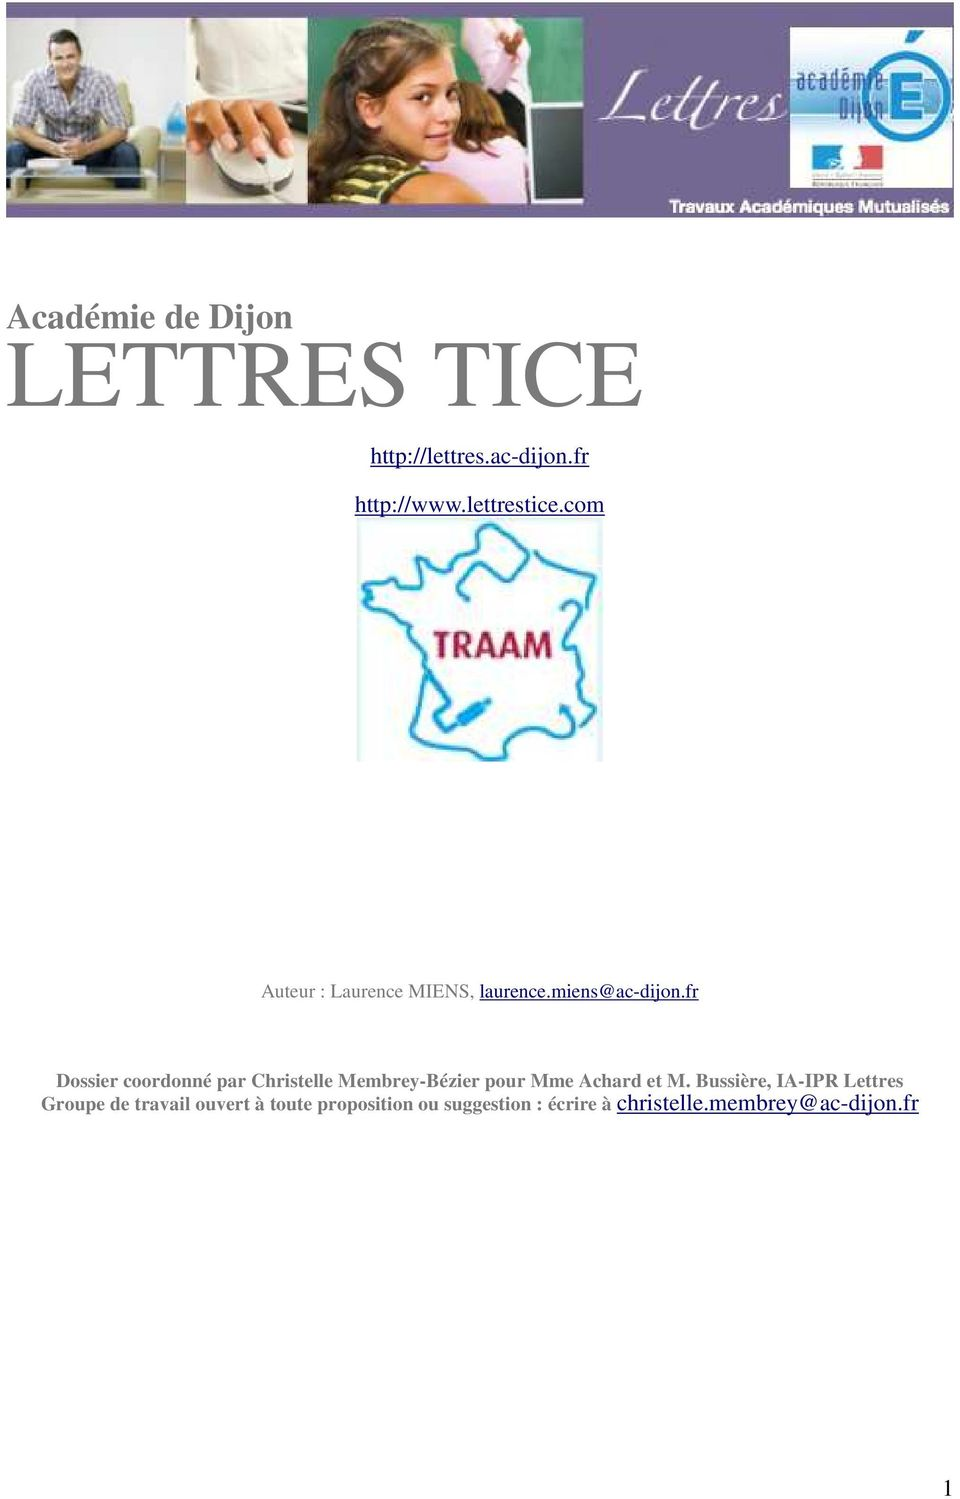 http://lettres.